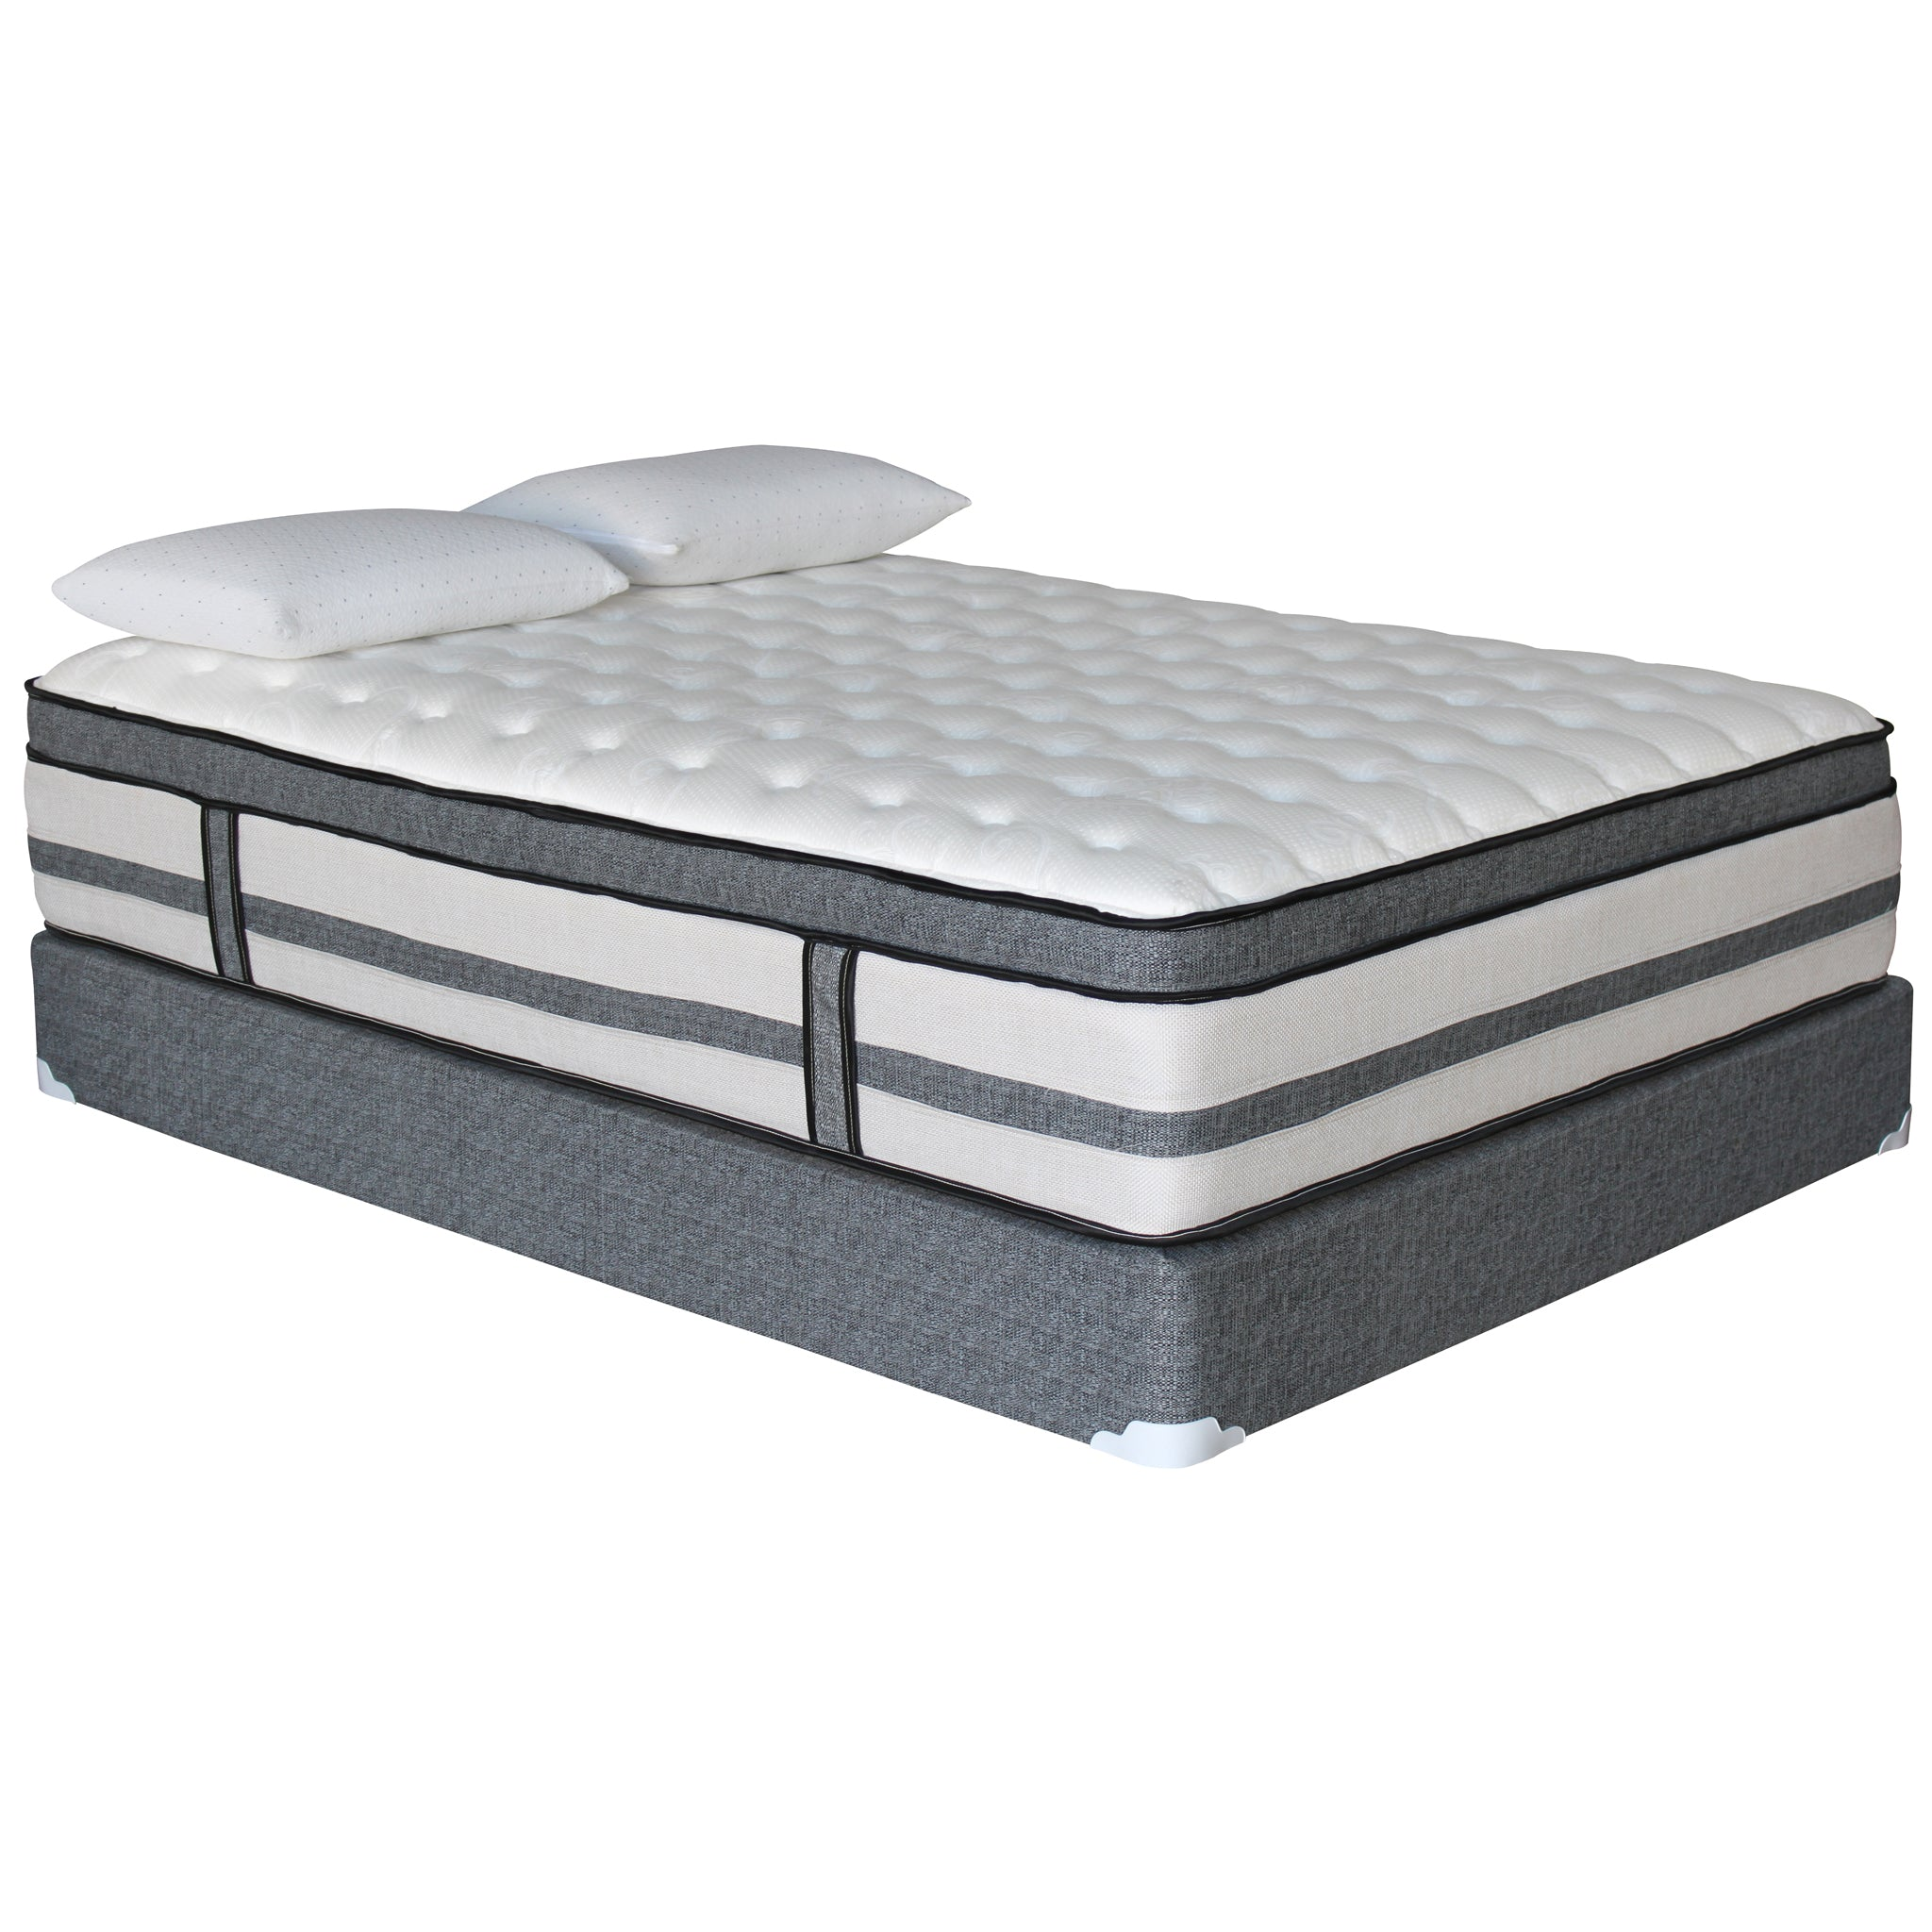 Princess Skyline Skyline Charcoal Mattress 1